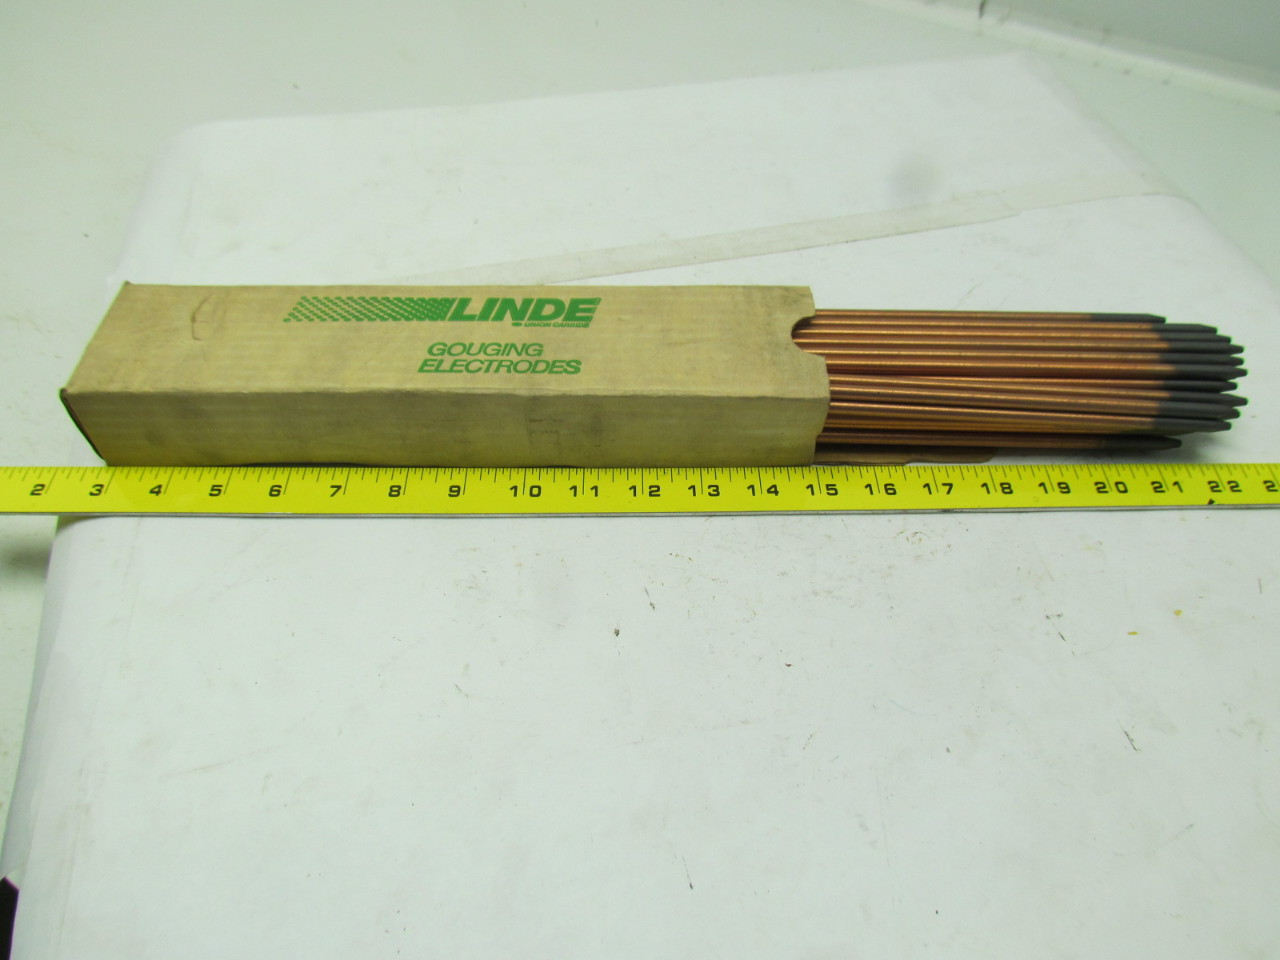 Linde 7012F04 Electrodes-DC copper Coated gouging rod 1/4